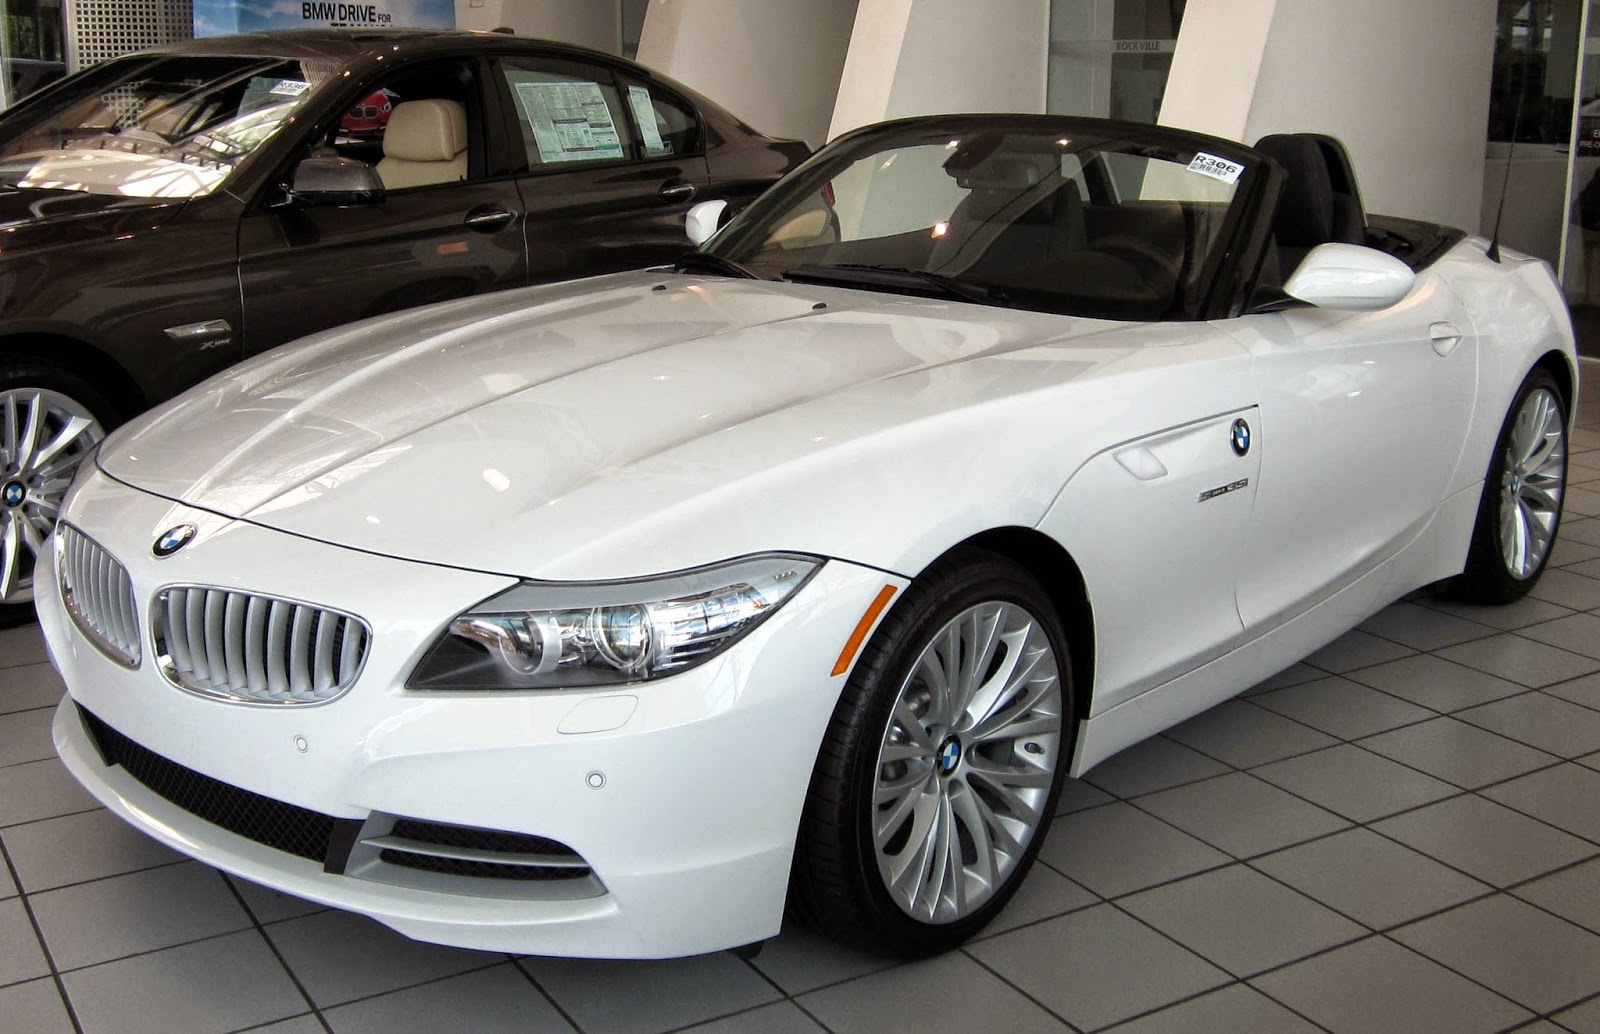 2017 Bmw Z4 Series Price >> Future Digital Cars 2017 Bmw Z4 Review And Prices